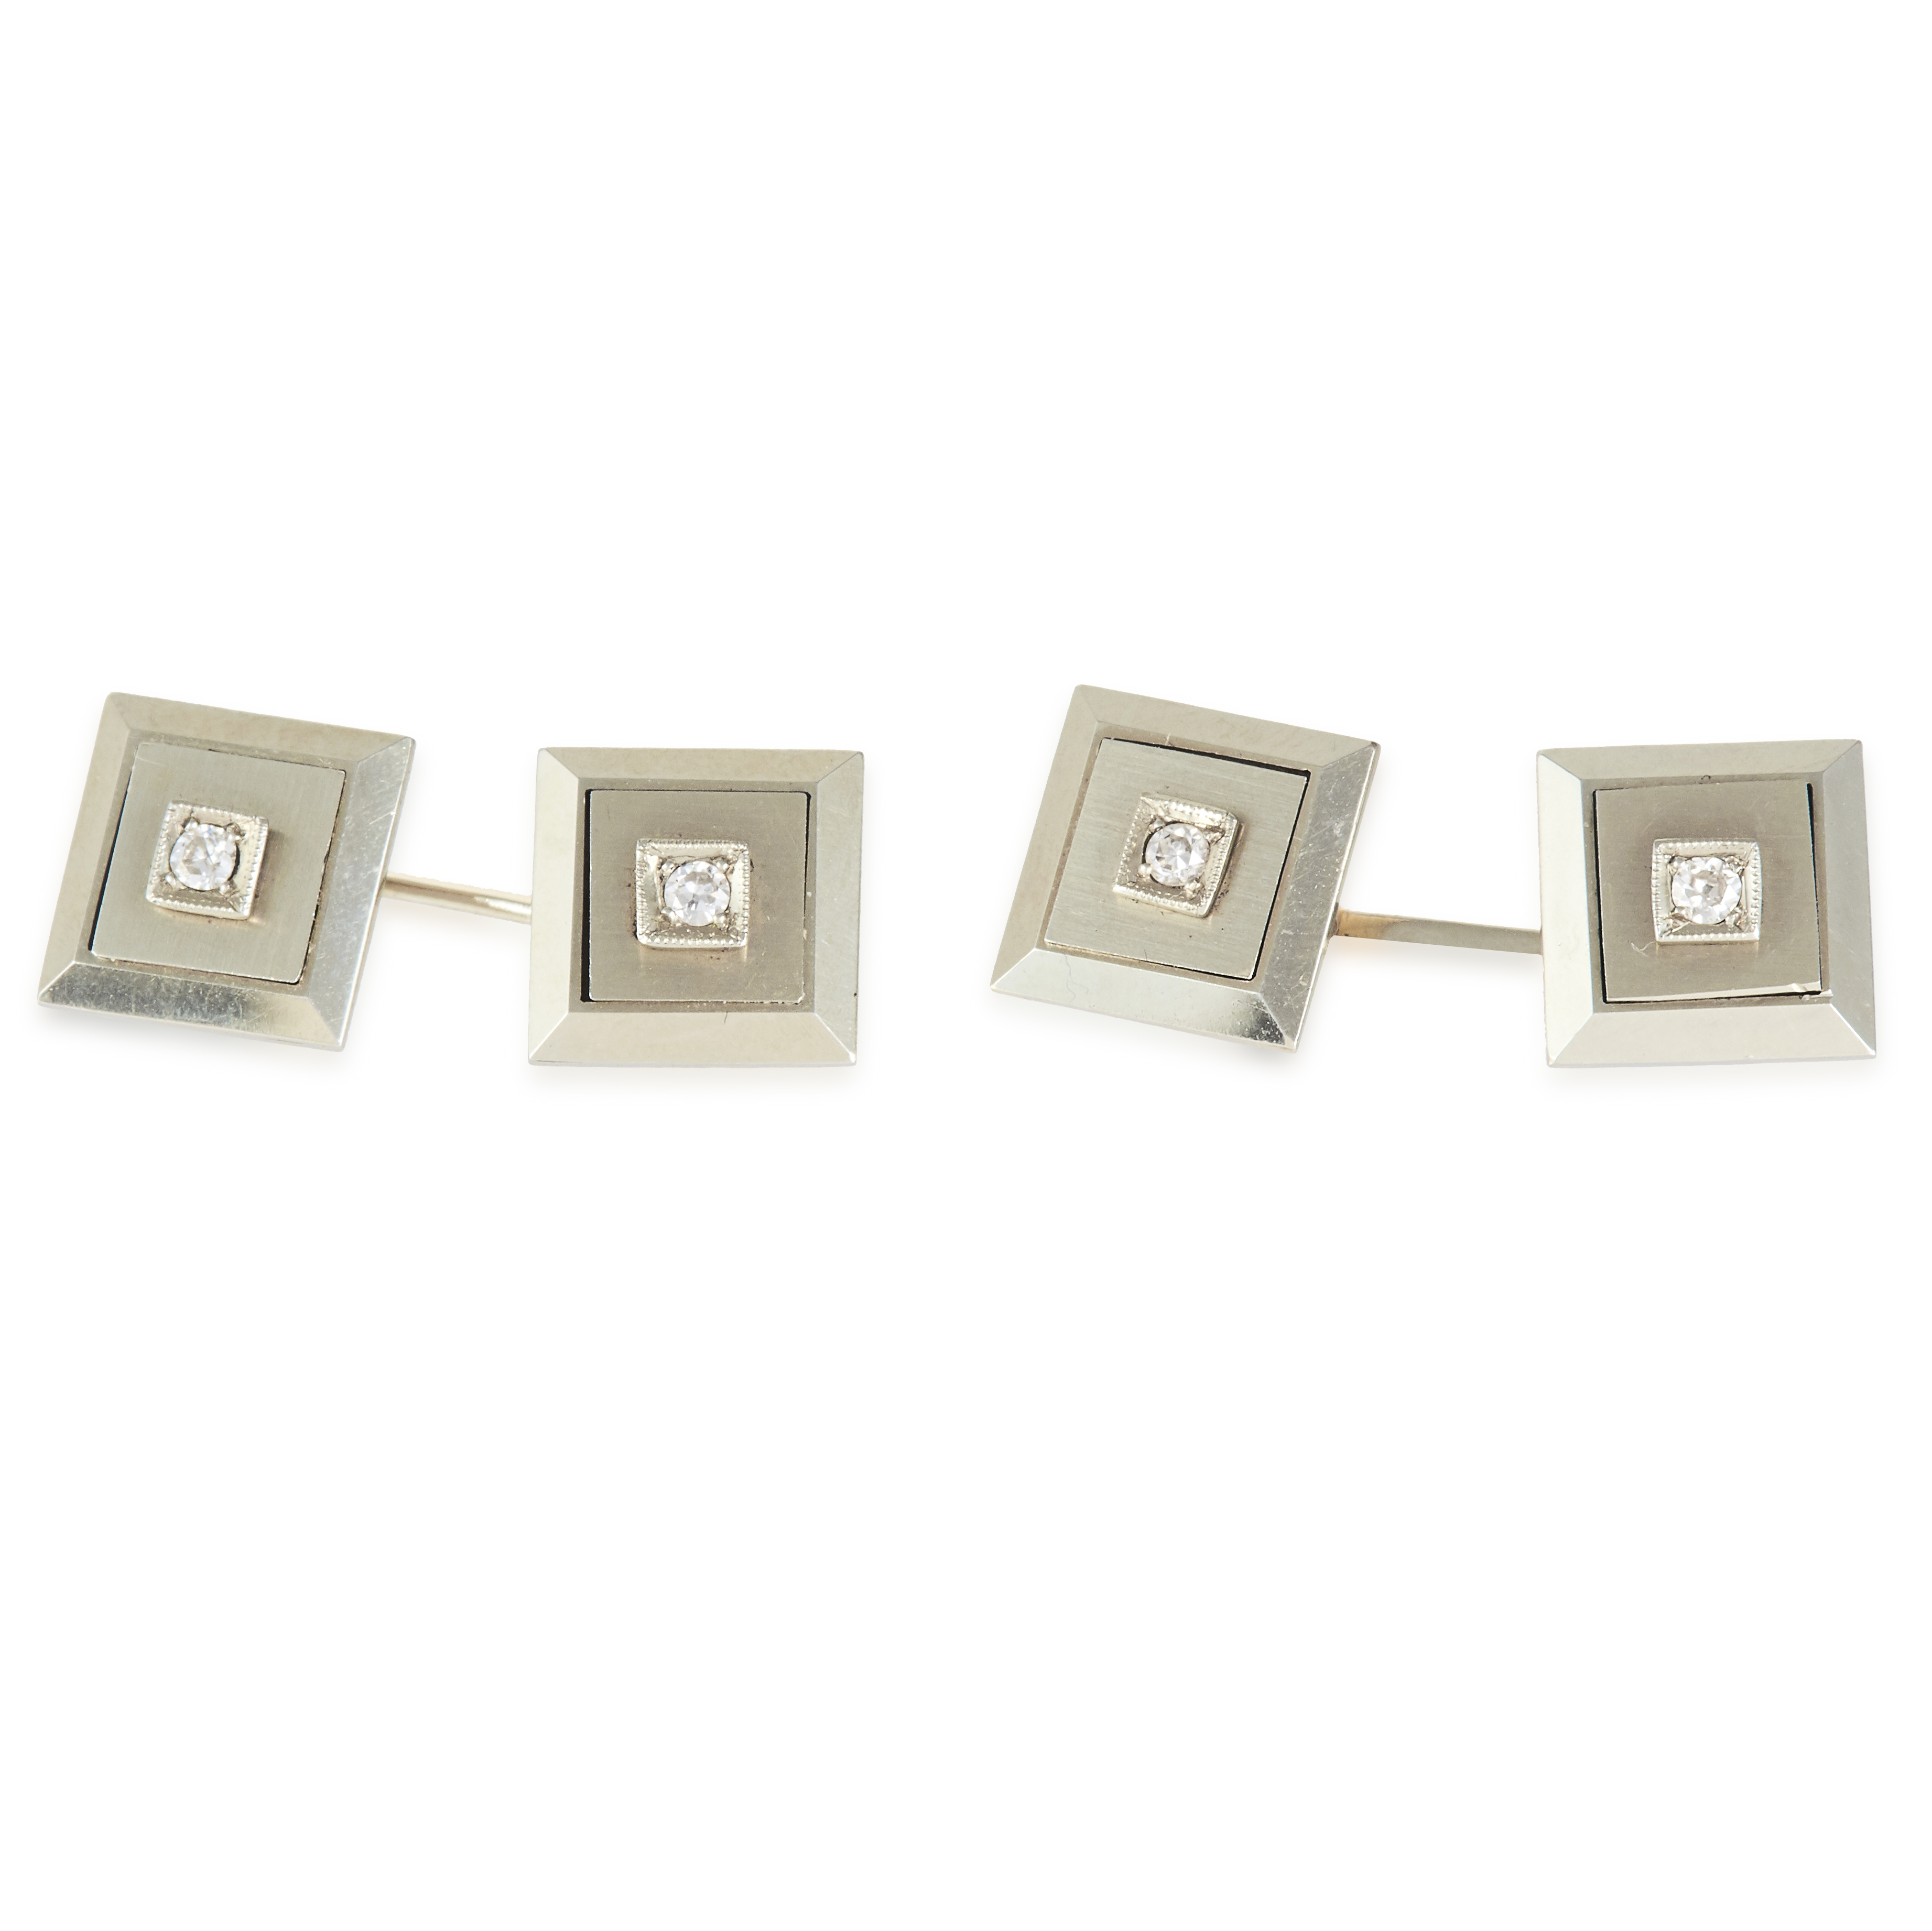 A PAIR OF VINTAGE DIAMOND CUFFLINKS in high carat yellow gold, each square face jewelled with a